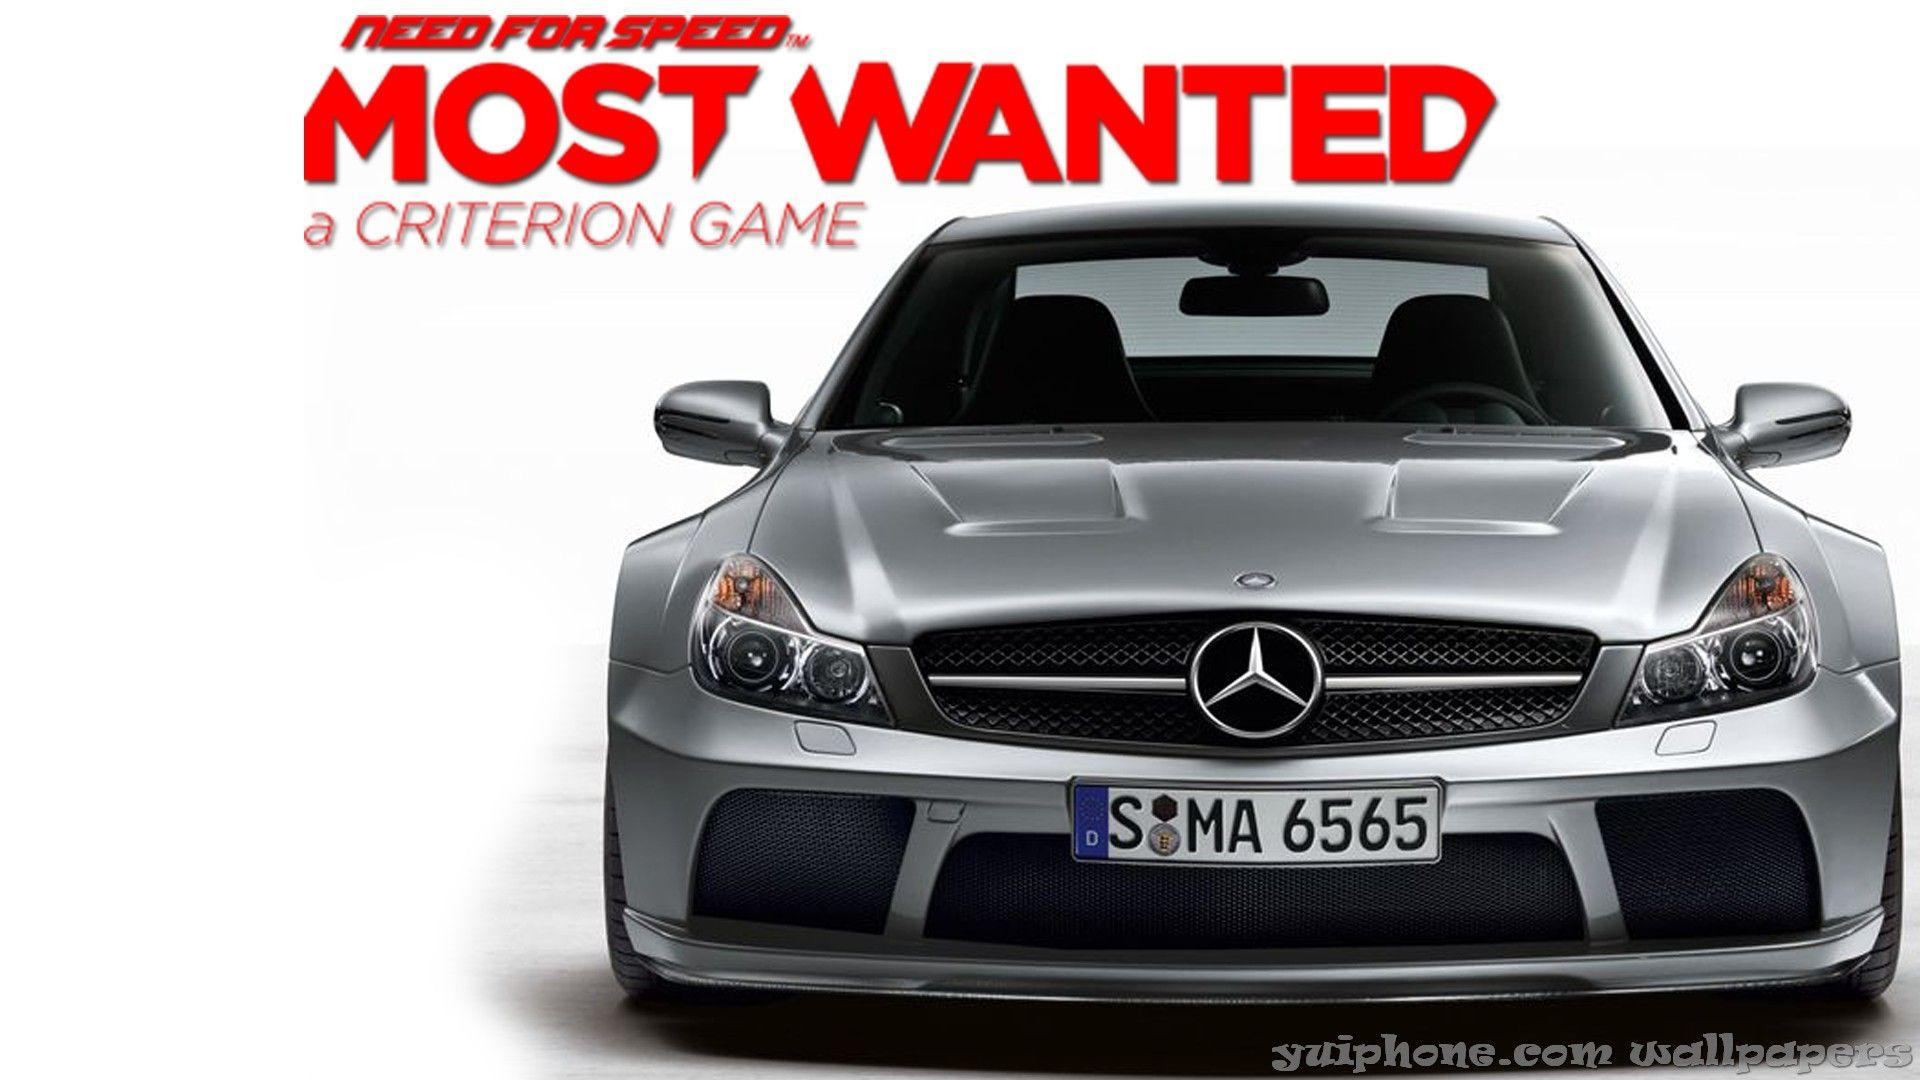 Need for speed most wanted Computer Wallpapers Desktop